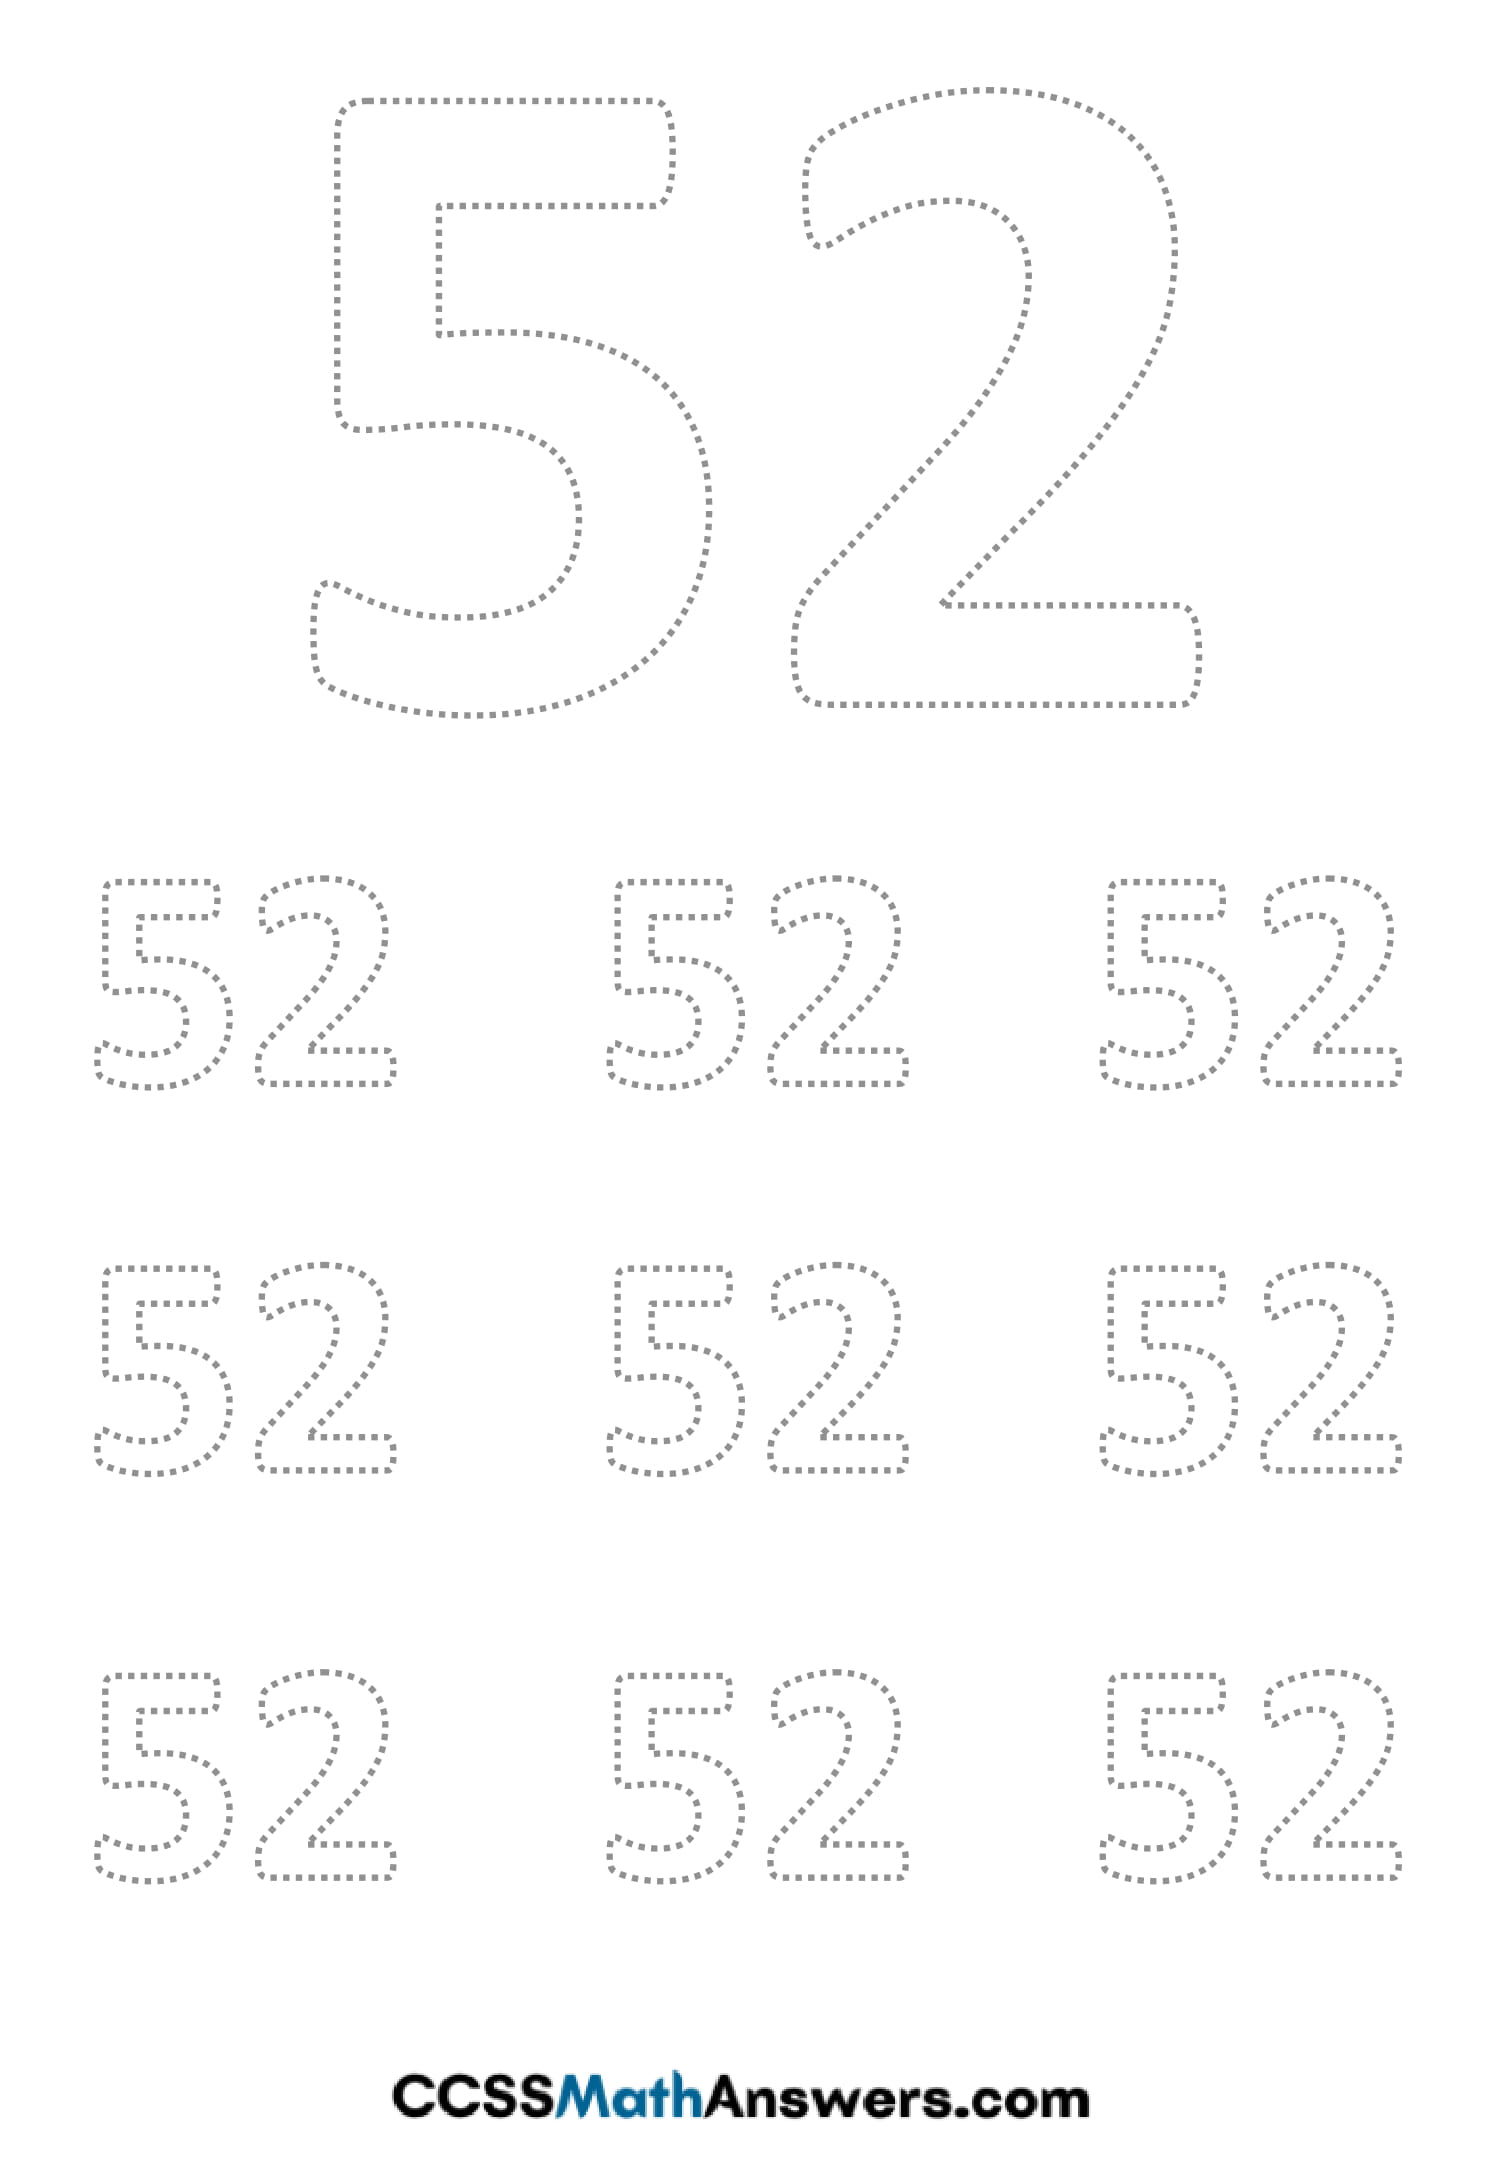 Worksheet on Number Fifty Two